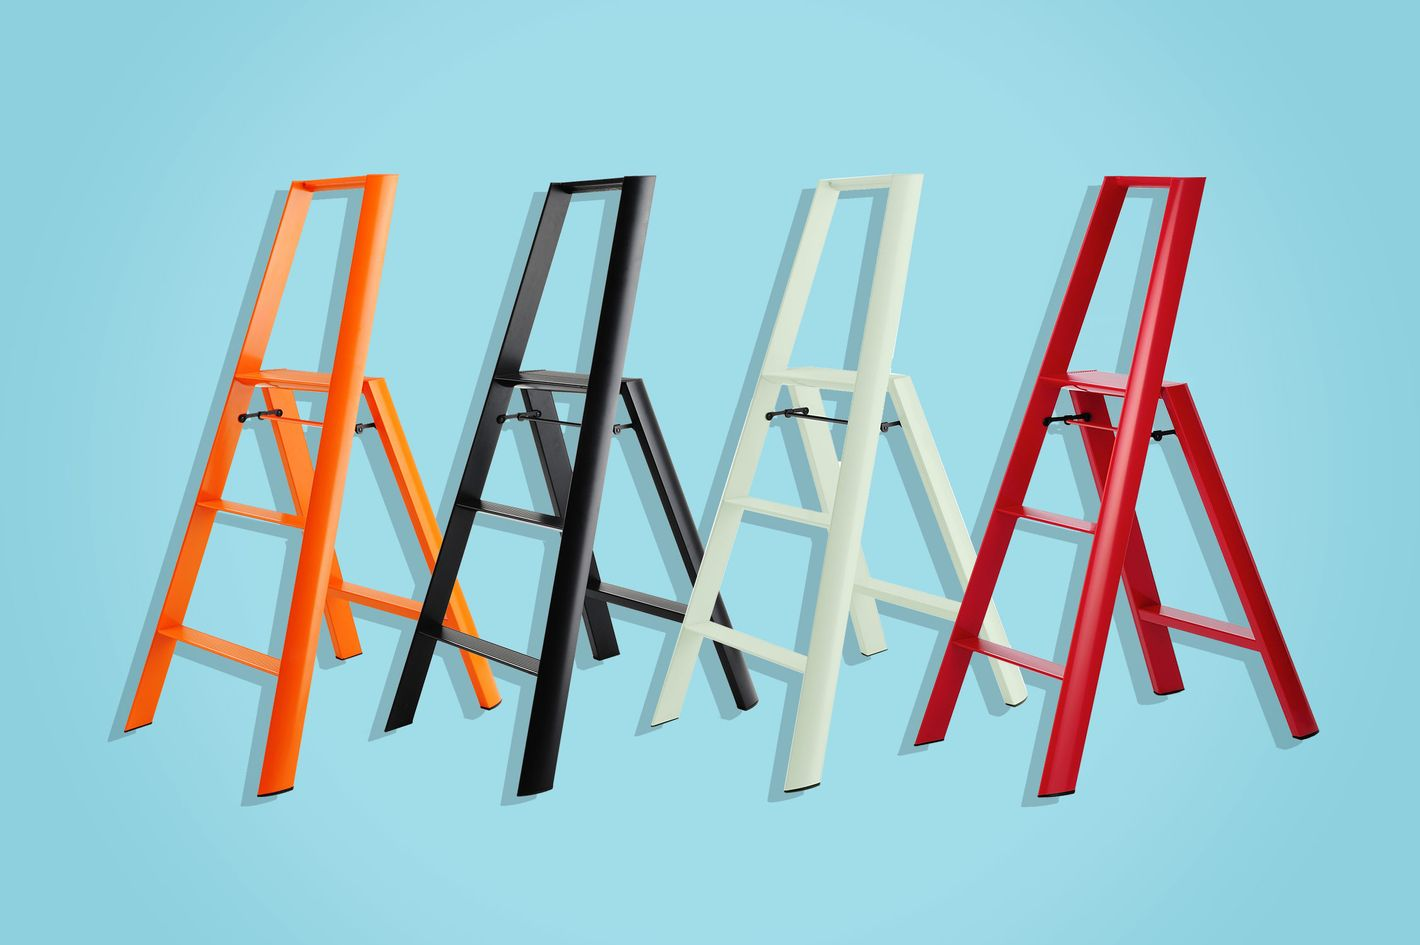 hasegawa lucano 3 step aluminum ladder - strategist best home decor and best ladder